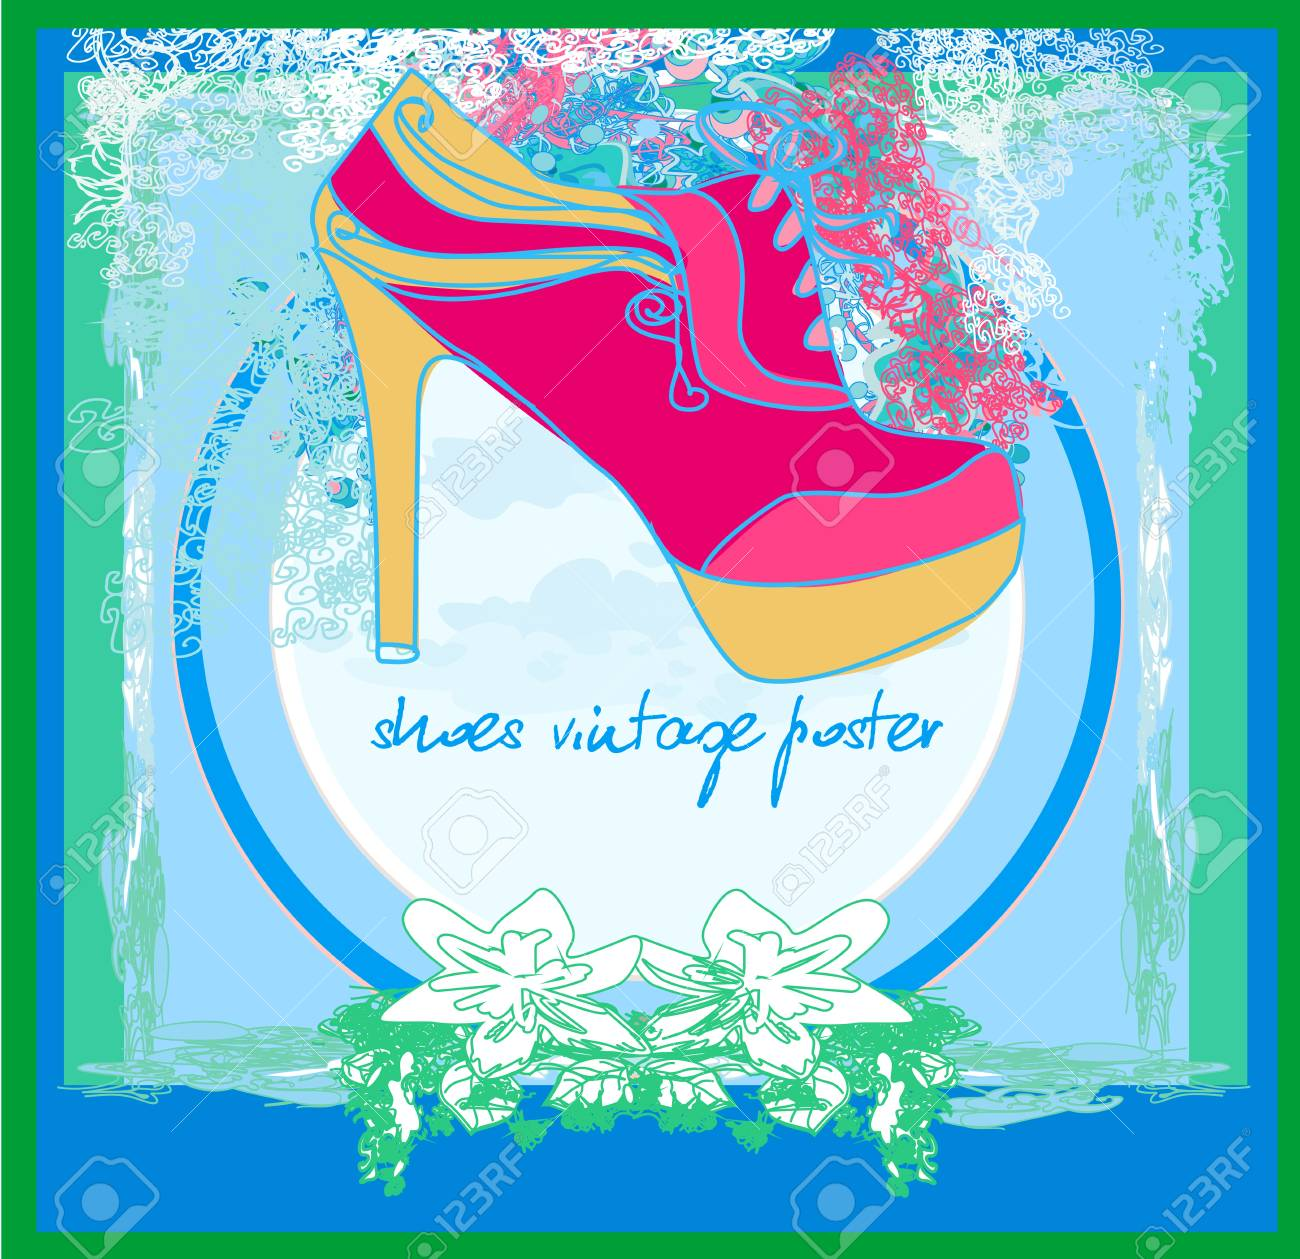 shoes vintage poster Stock Vector - 17354904